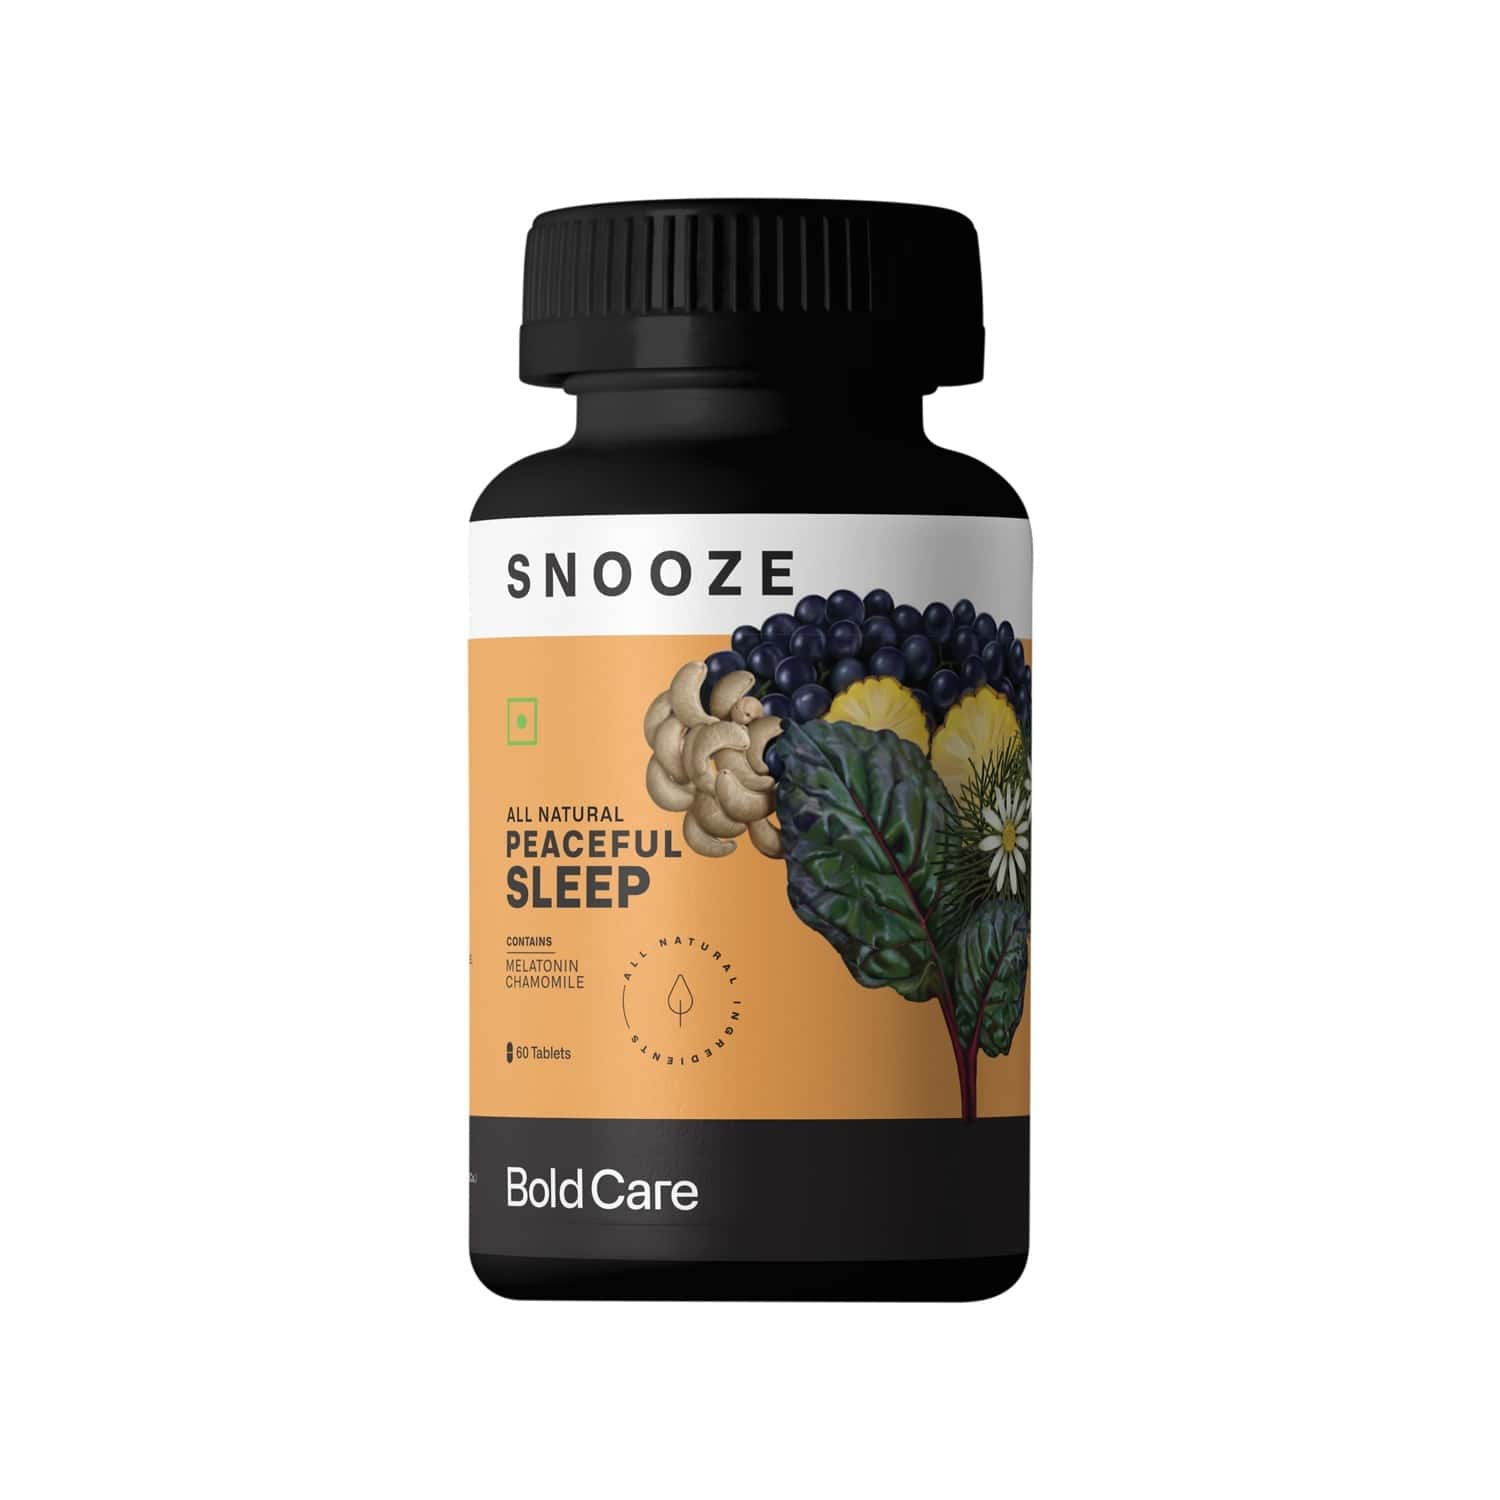 Bold Care Snooze All Natural Sleeping Pills - Melatonin 10mg, Chamomile, L Theanine & Magnesium - Supplements For Improved Sleep & Stress Management - 60 Tablets